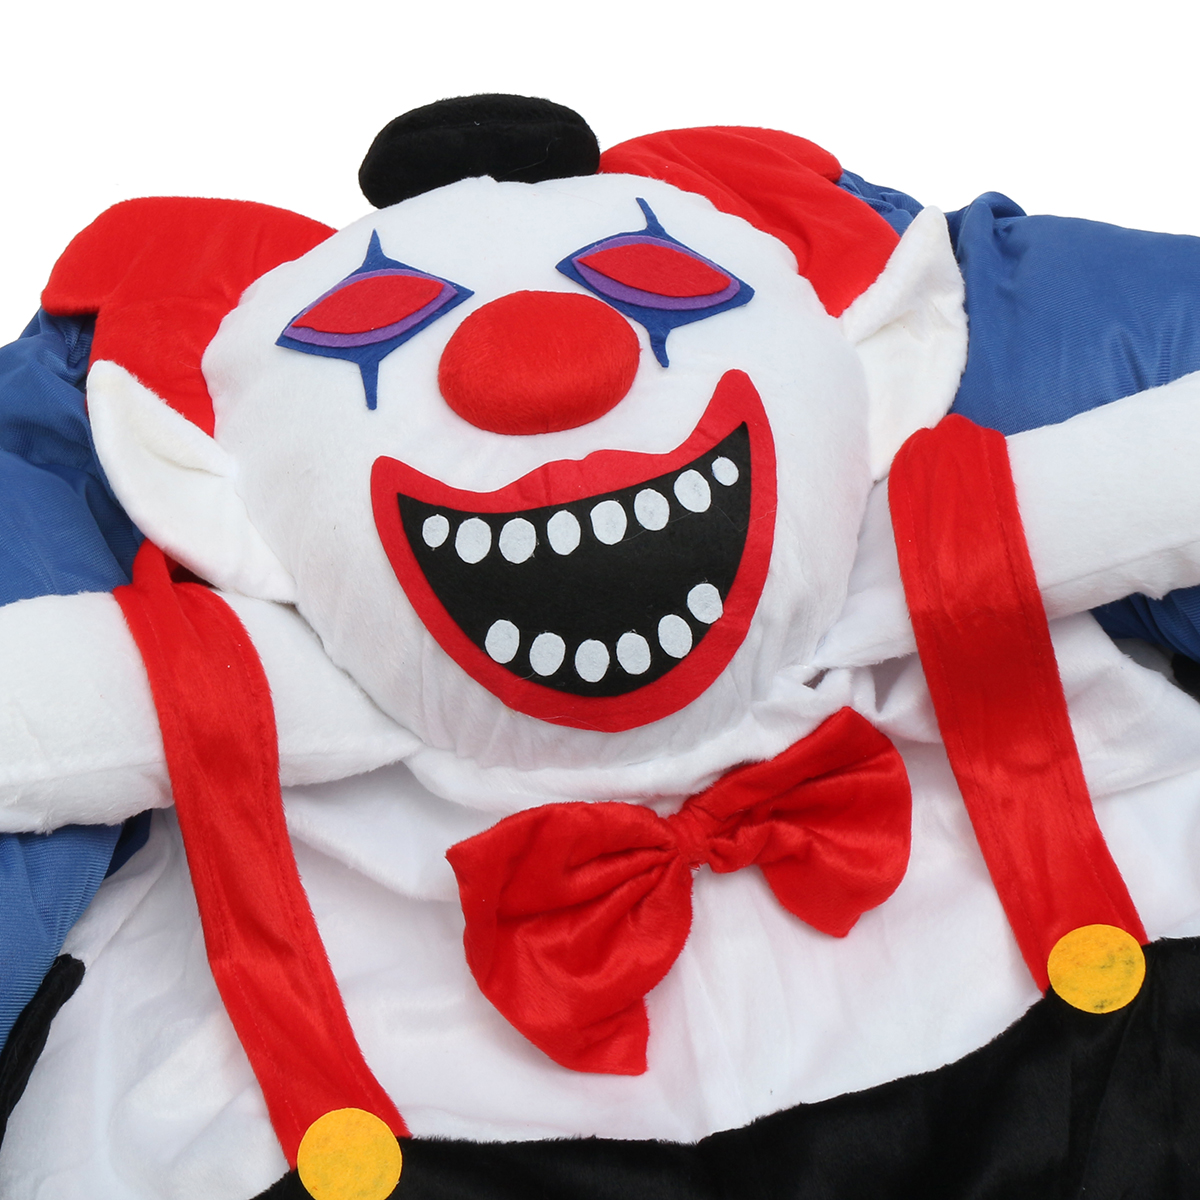 Devil Clown Unisex Dwarf Carry Me Fancy Piggy Back Ride On Dress Mascot Costume Party Pants